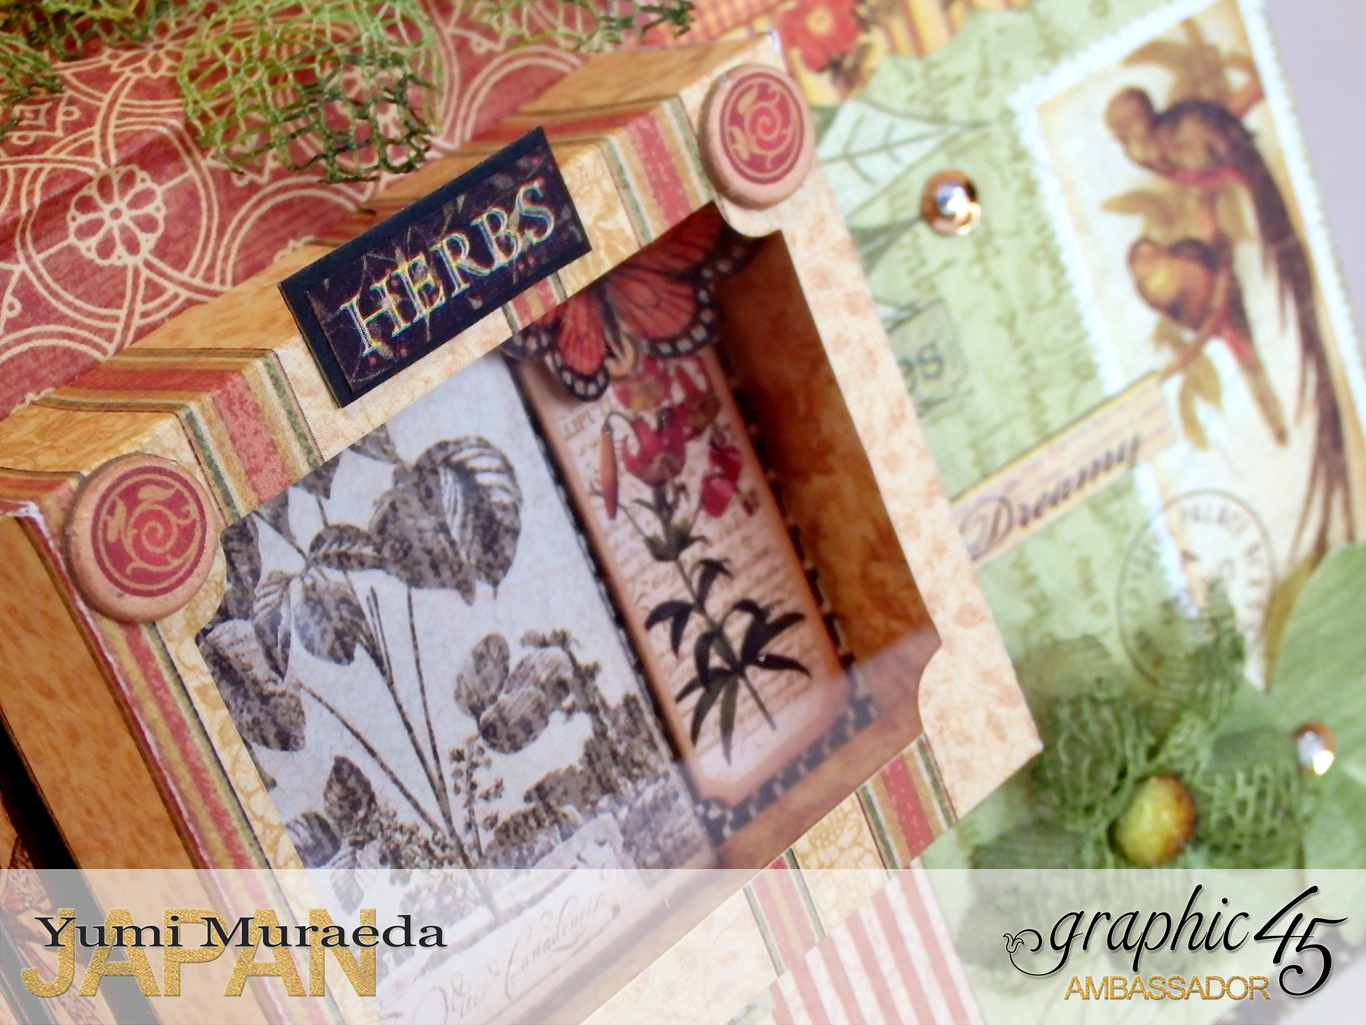 11Secret Gaden Museum Botanicabellaby Yumi MuraedaProduct by Graphic 45